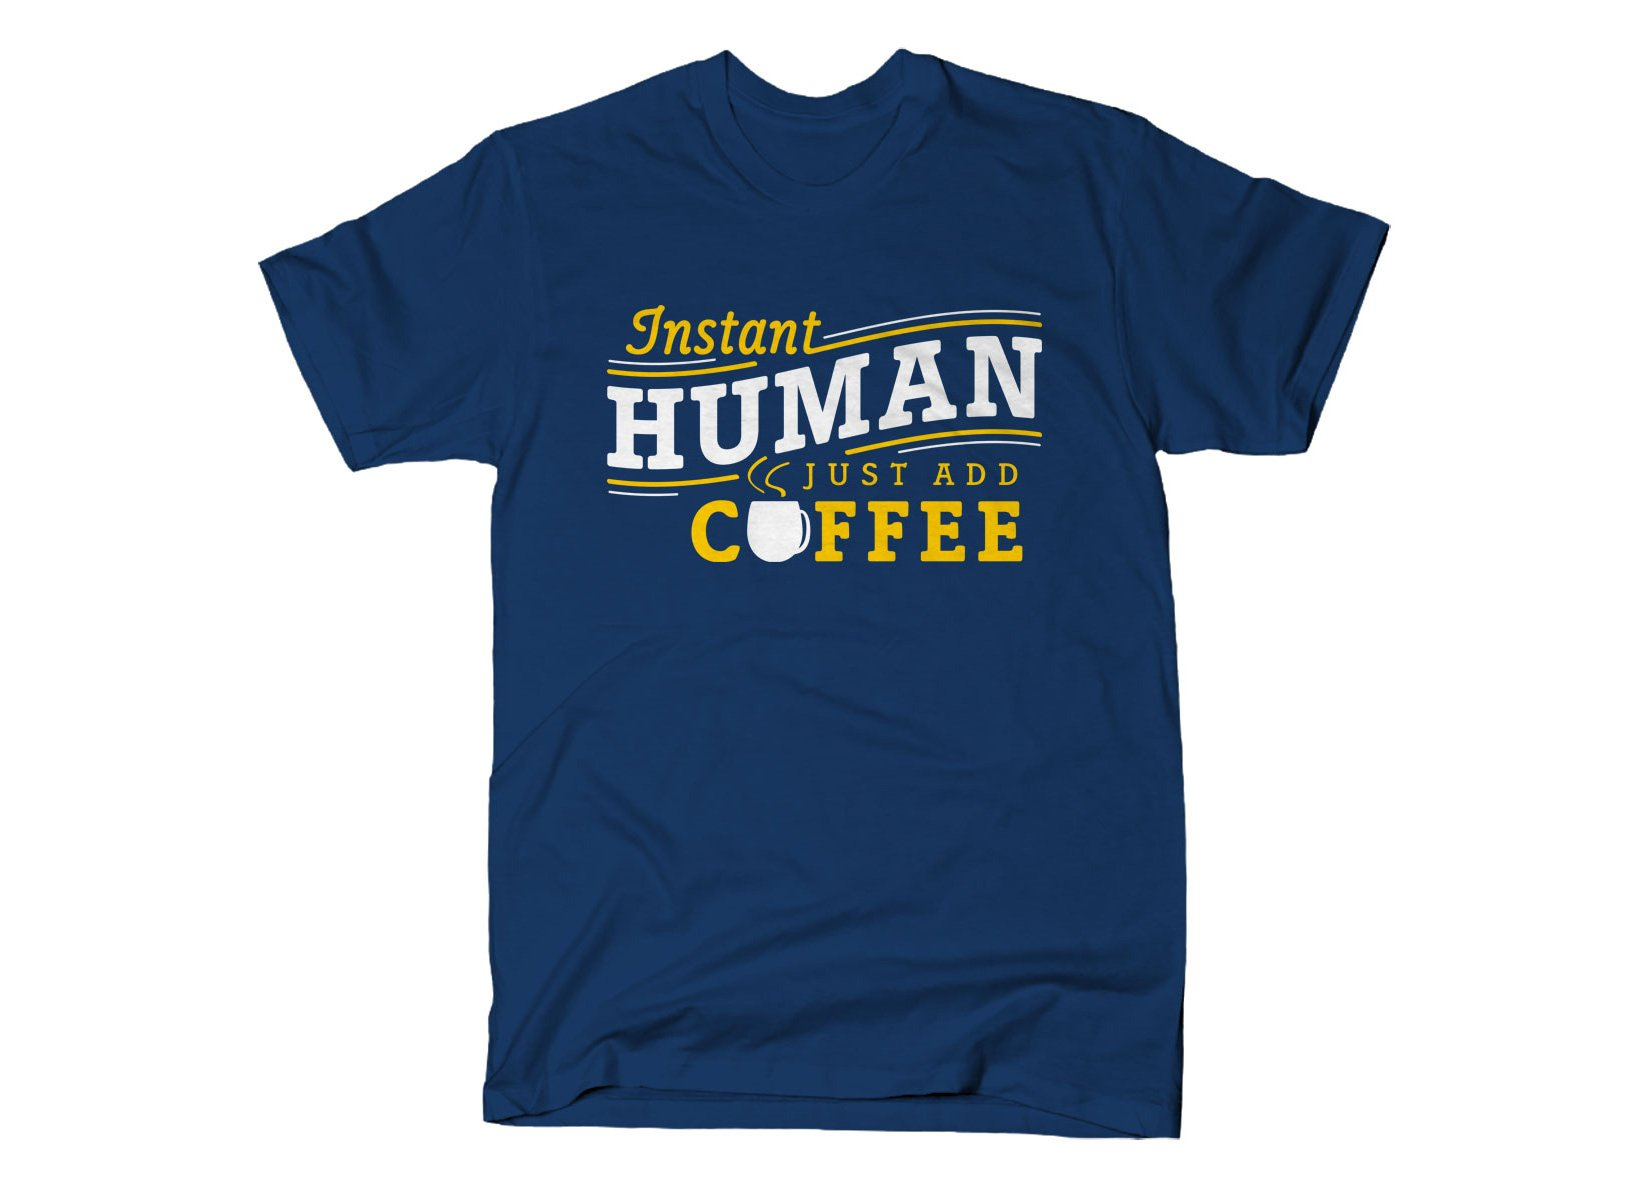 Instant Human Just Add Coffee on Mens T-Shirt